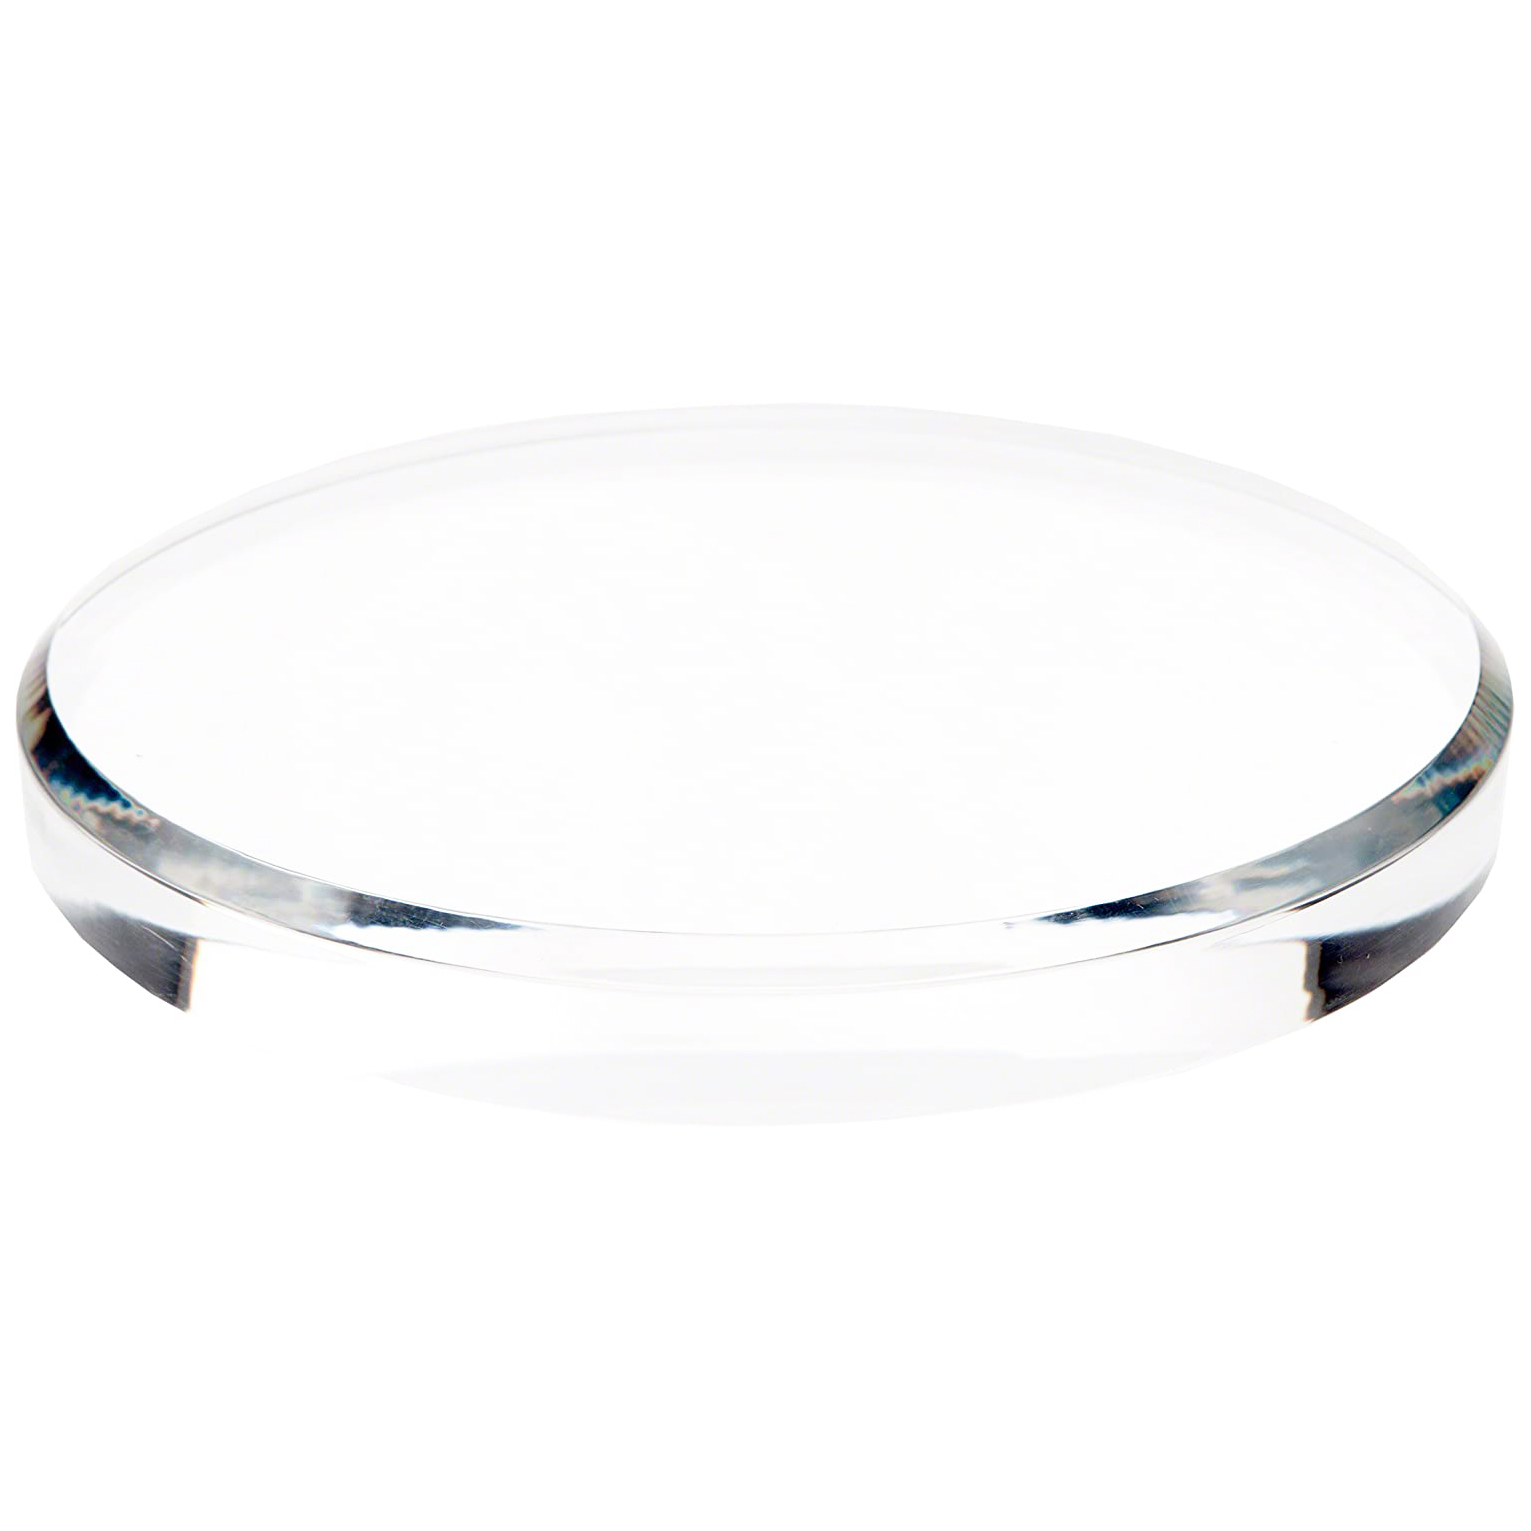 Clear Acrylic Round Display Base